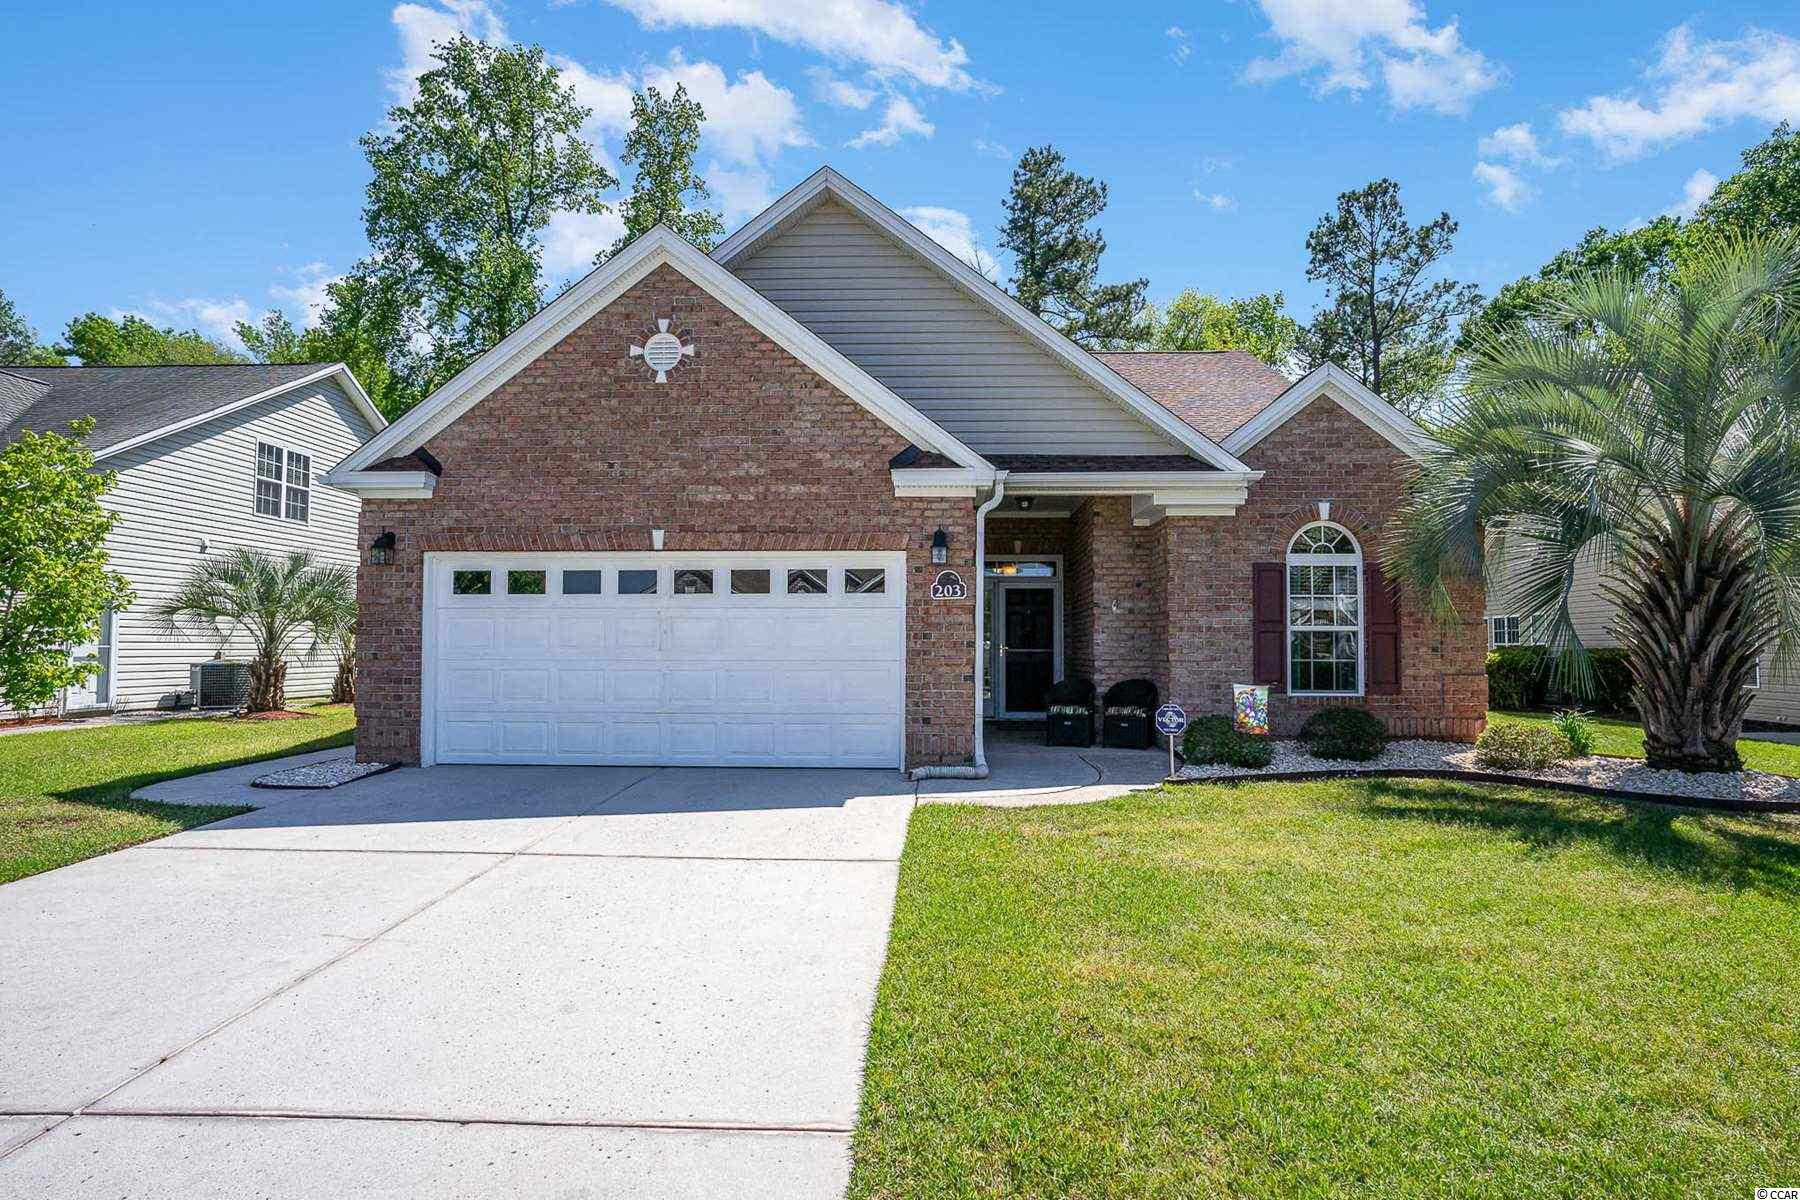 Located in the low HOA community of Fox Chase, this 4 bed, 3 bath home is situated on a lot that backs up to the trees. Home features an open floor plan w/ a a beautiful catwalk looking over the living space. The kitchen offers a breakfast bar, lots of counter & cabinet space and an eat in area. The Master suite offers a large space with walk in closet, separate sinks & vanities, garden tub and separate shower.  The remaining bedrooms are spacious and offer ample closet space. The outdoor space is perfect for cookouts with family and friends or just relaxing. Community is located in an award winning school district.  Conveniently located to unbelievable dining & entertainment, The Marshwalk, fishing piers, Brookgreen Gardens,  the ICW, beautiful beaches & so much more. Call today to schedule your showing!